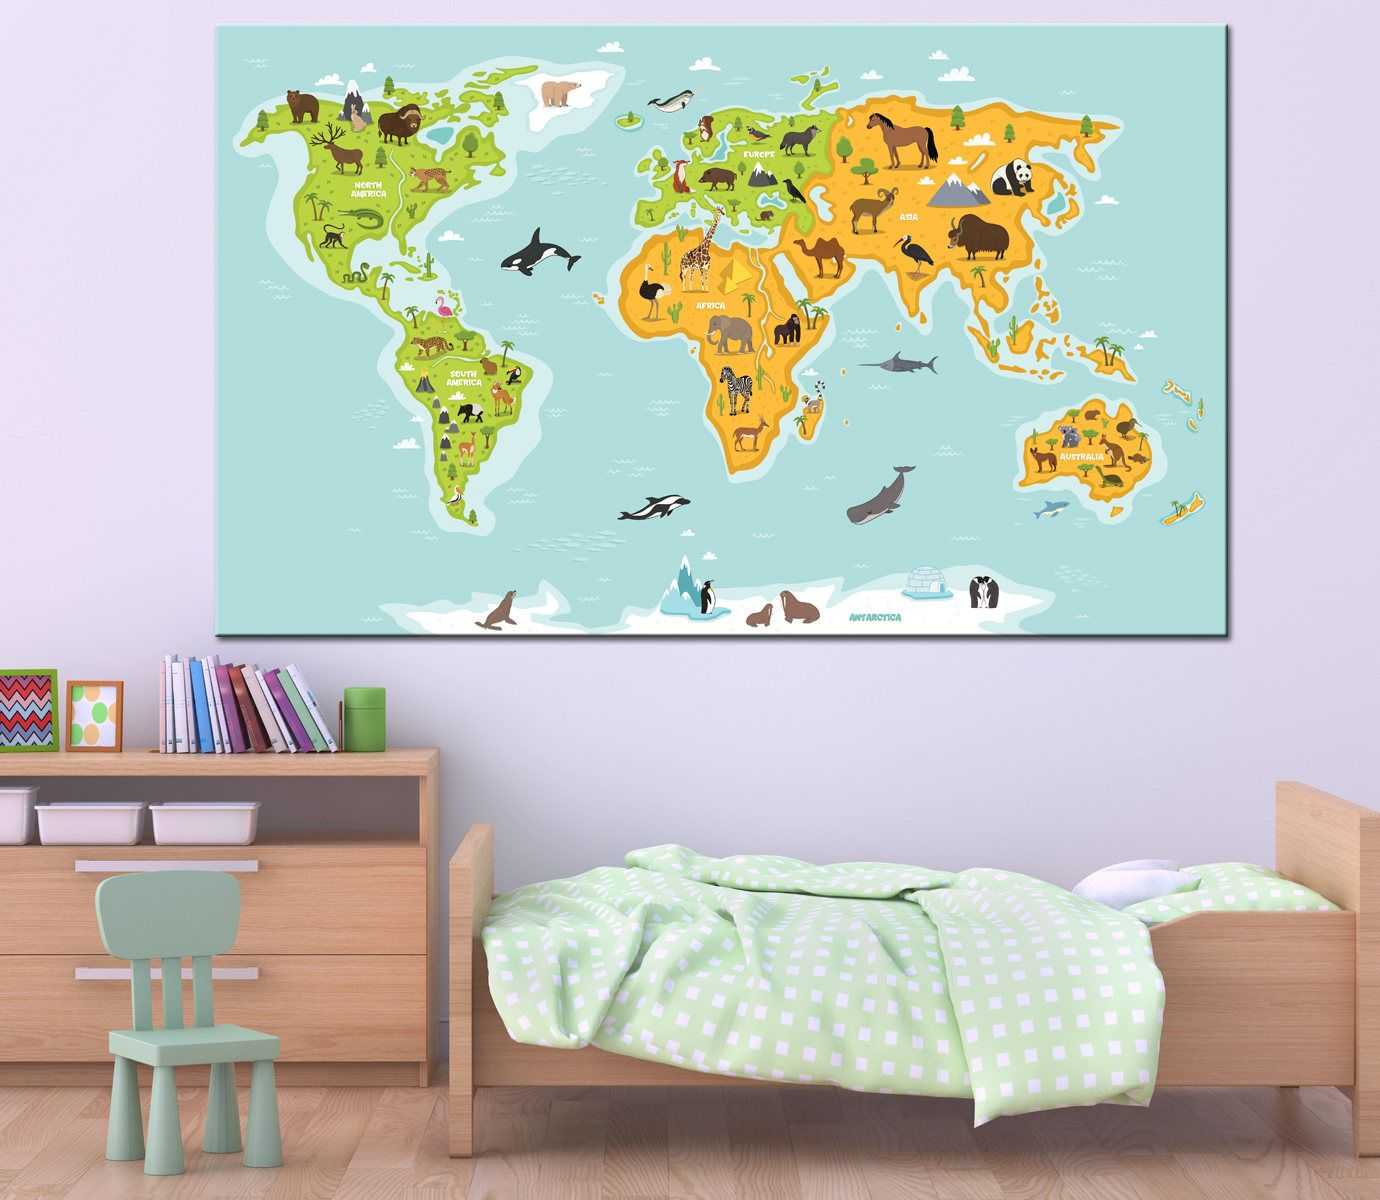 animal map for kids world map canvas print for children cute illustrated preschool cartoon globe with animals oceans and continents